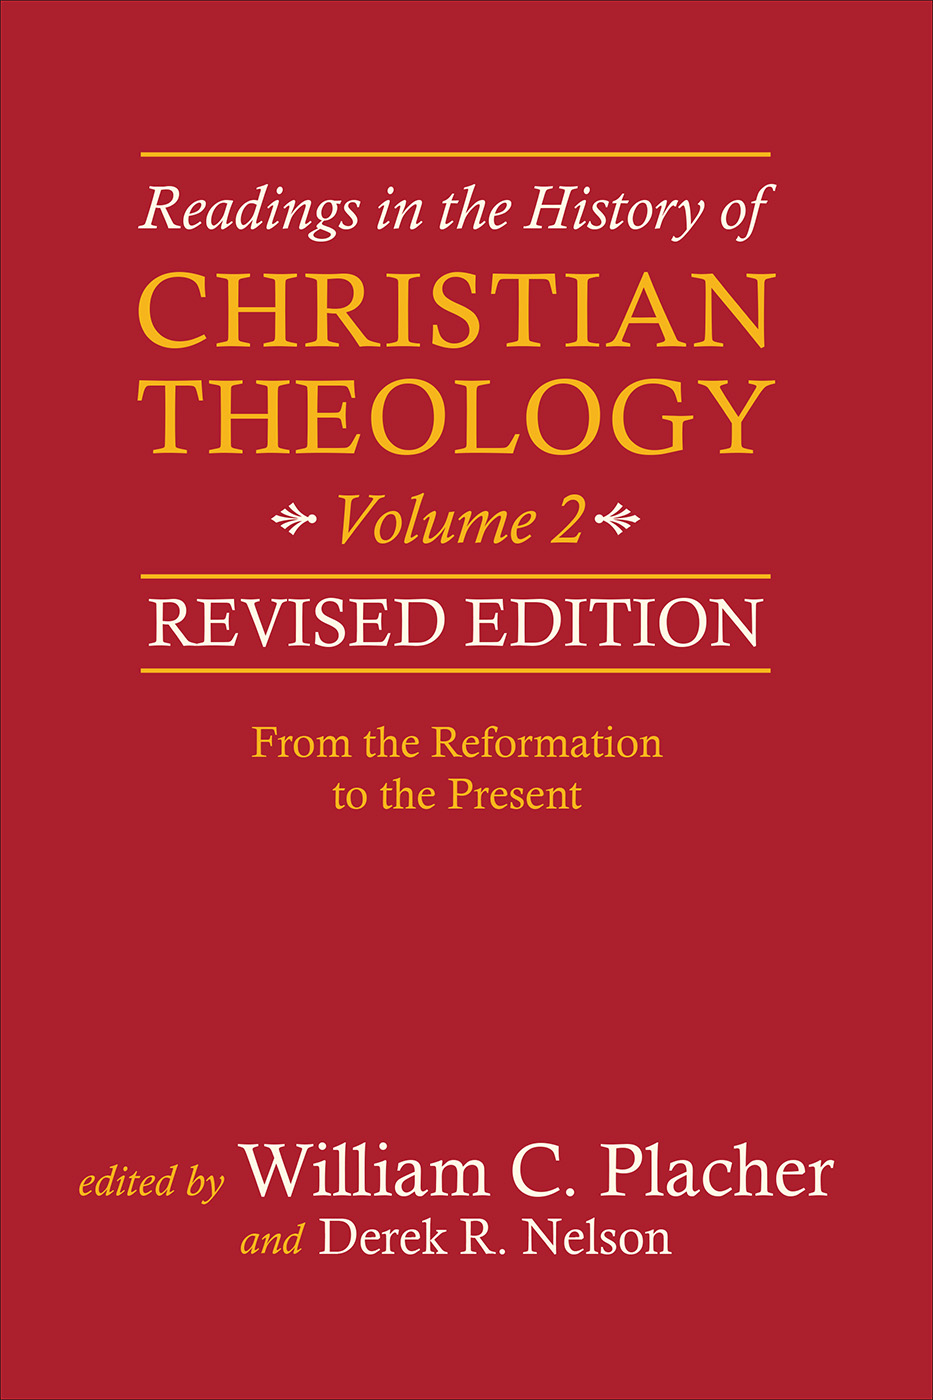 a paper on the history of christianity Essay on christianity: free examples of essays, research and term papers examples of christianity essay topics, questions and thesis satatements.